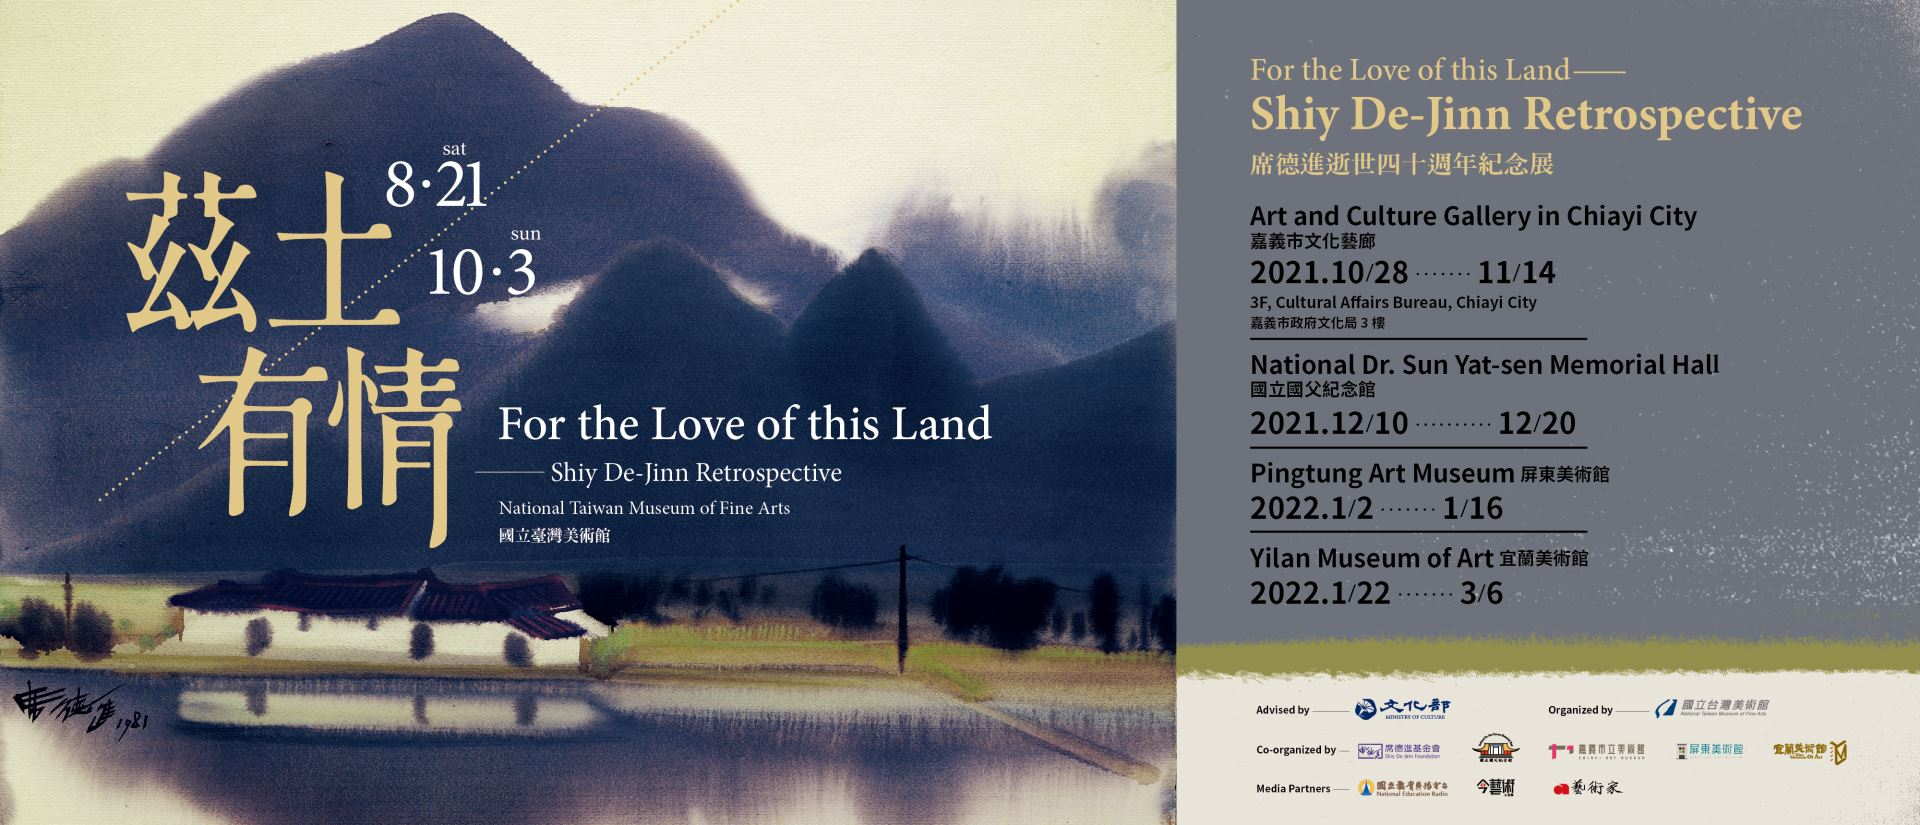 For the Love of this Land: Shiy De-Jinn Retrospectiveopennewwindow